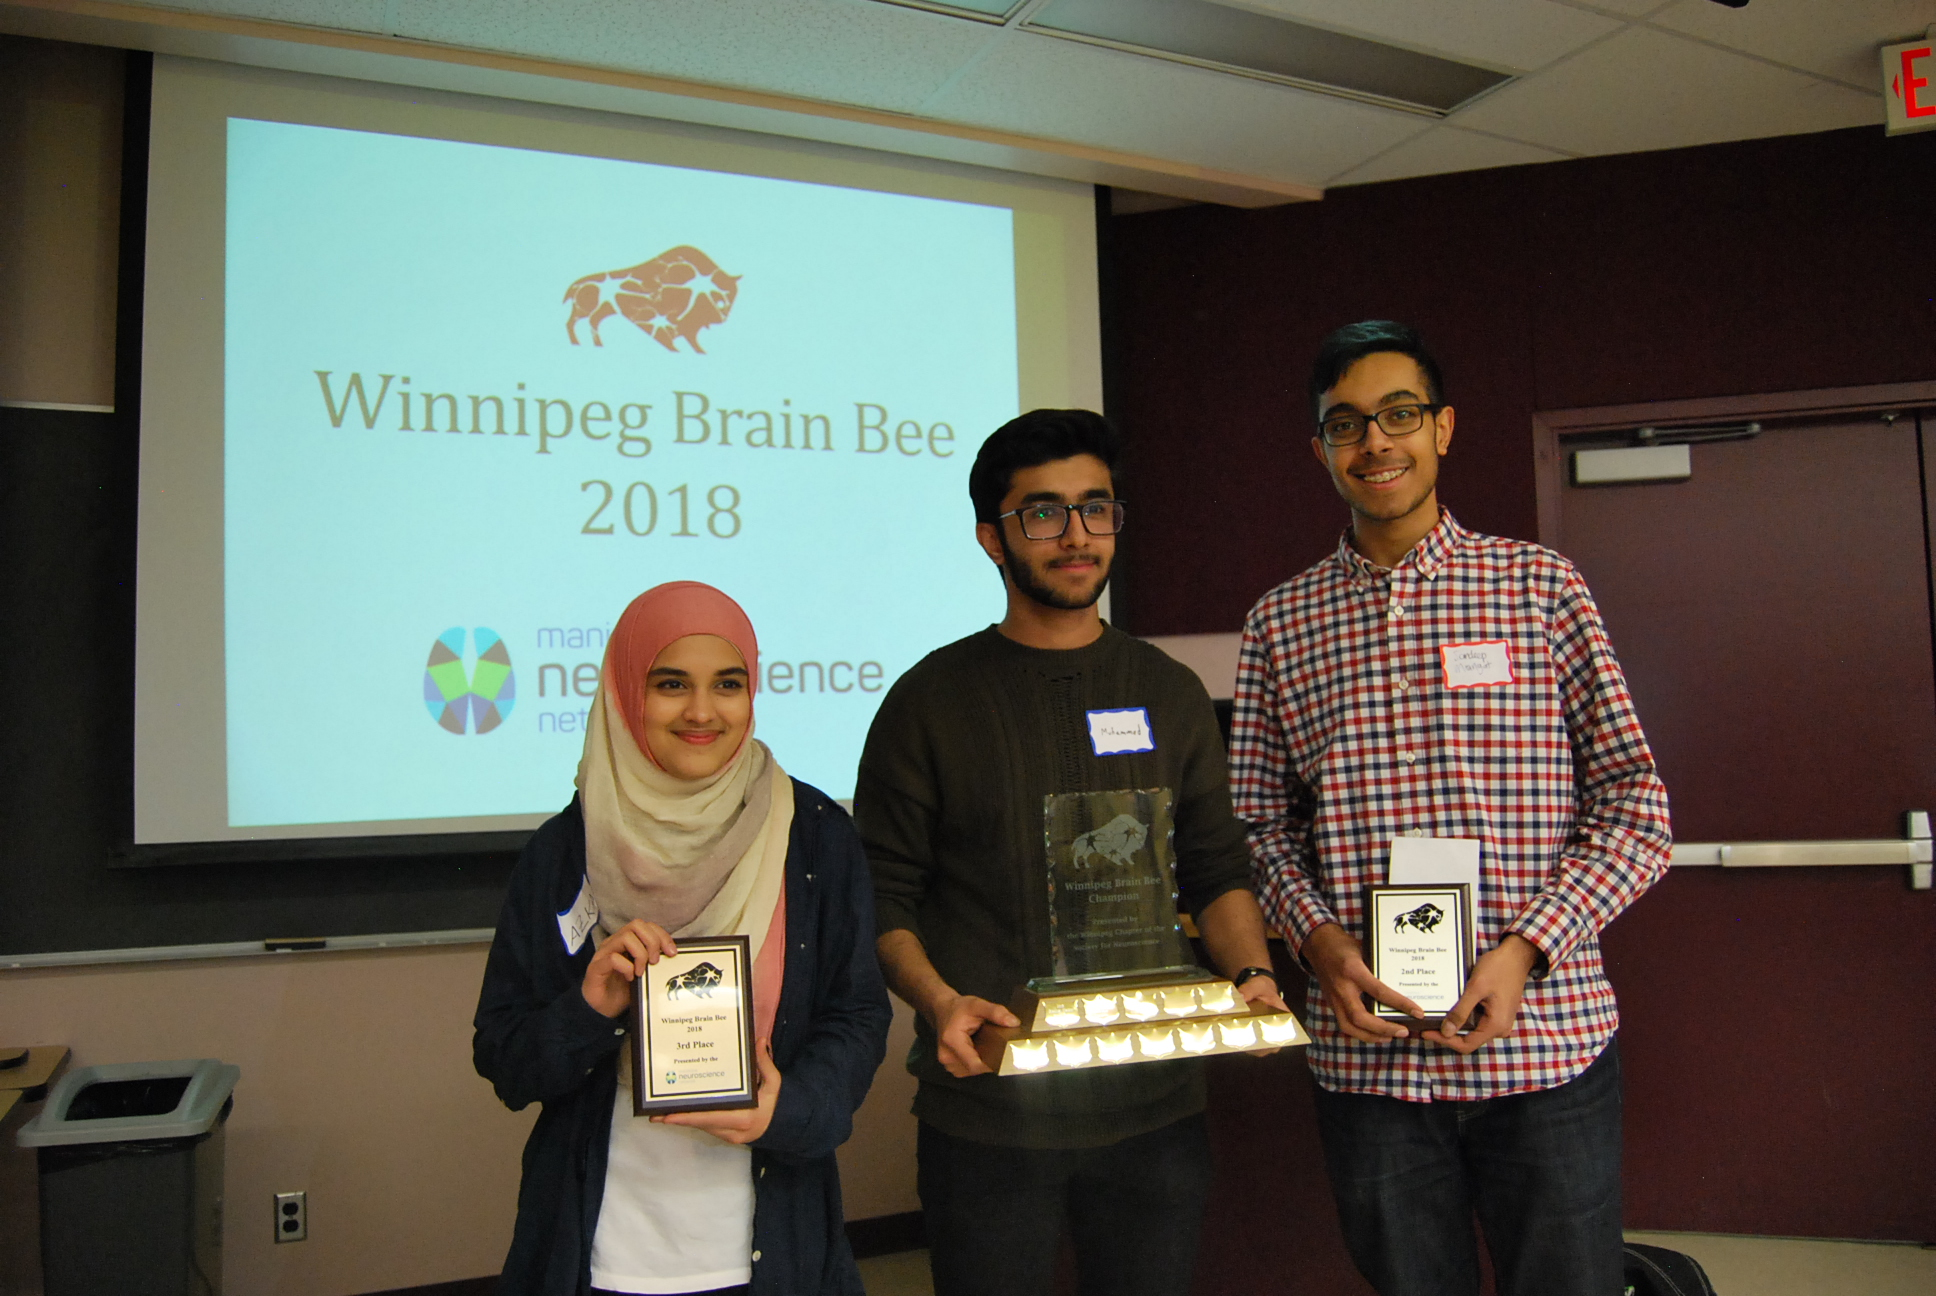 Winnipeg – Canadian National Brain Bee